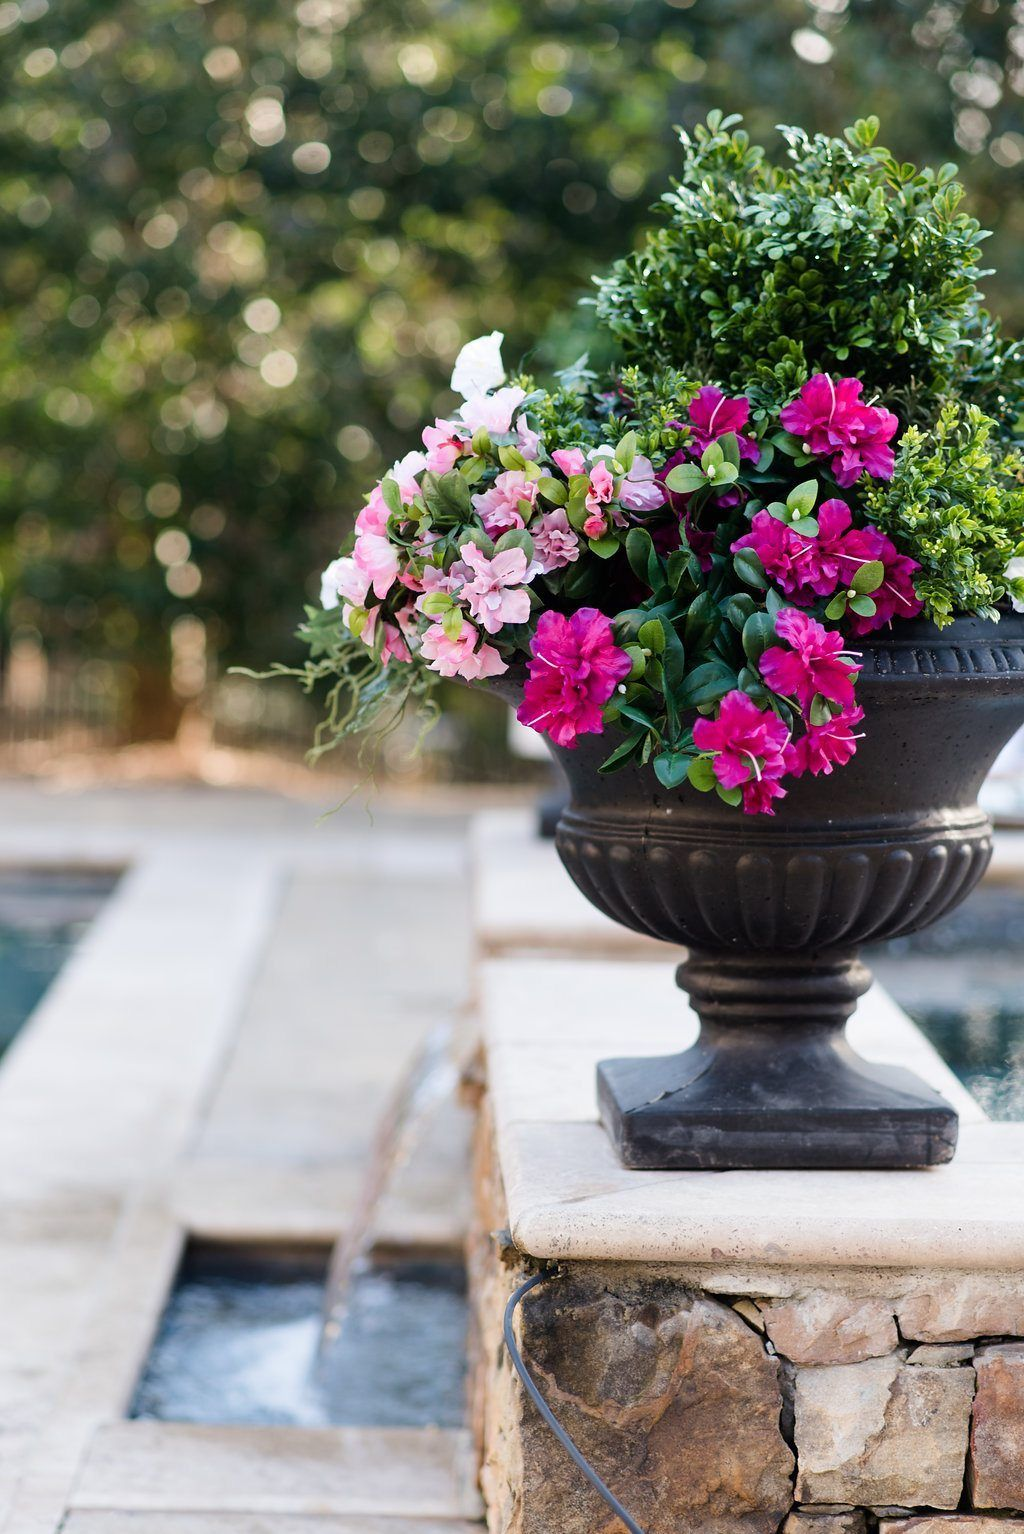 How To Fill An Outdoor Planter With Artificial Flowers Artificial Flower Arrangements Outdoor Flower Planters Outdoor Planters